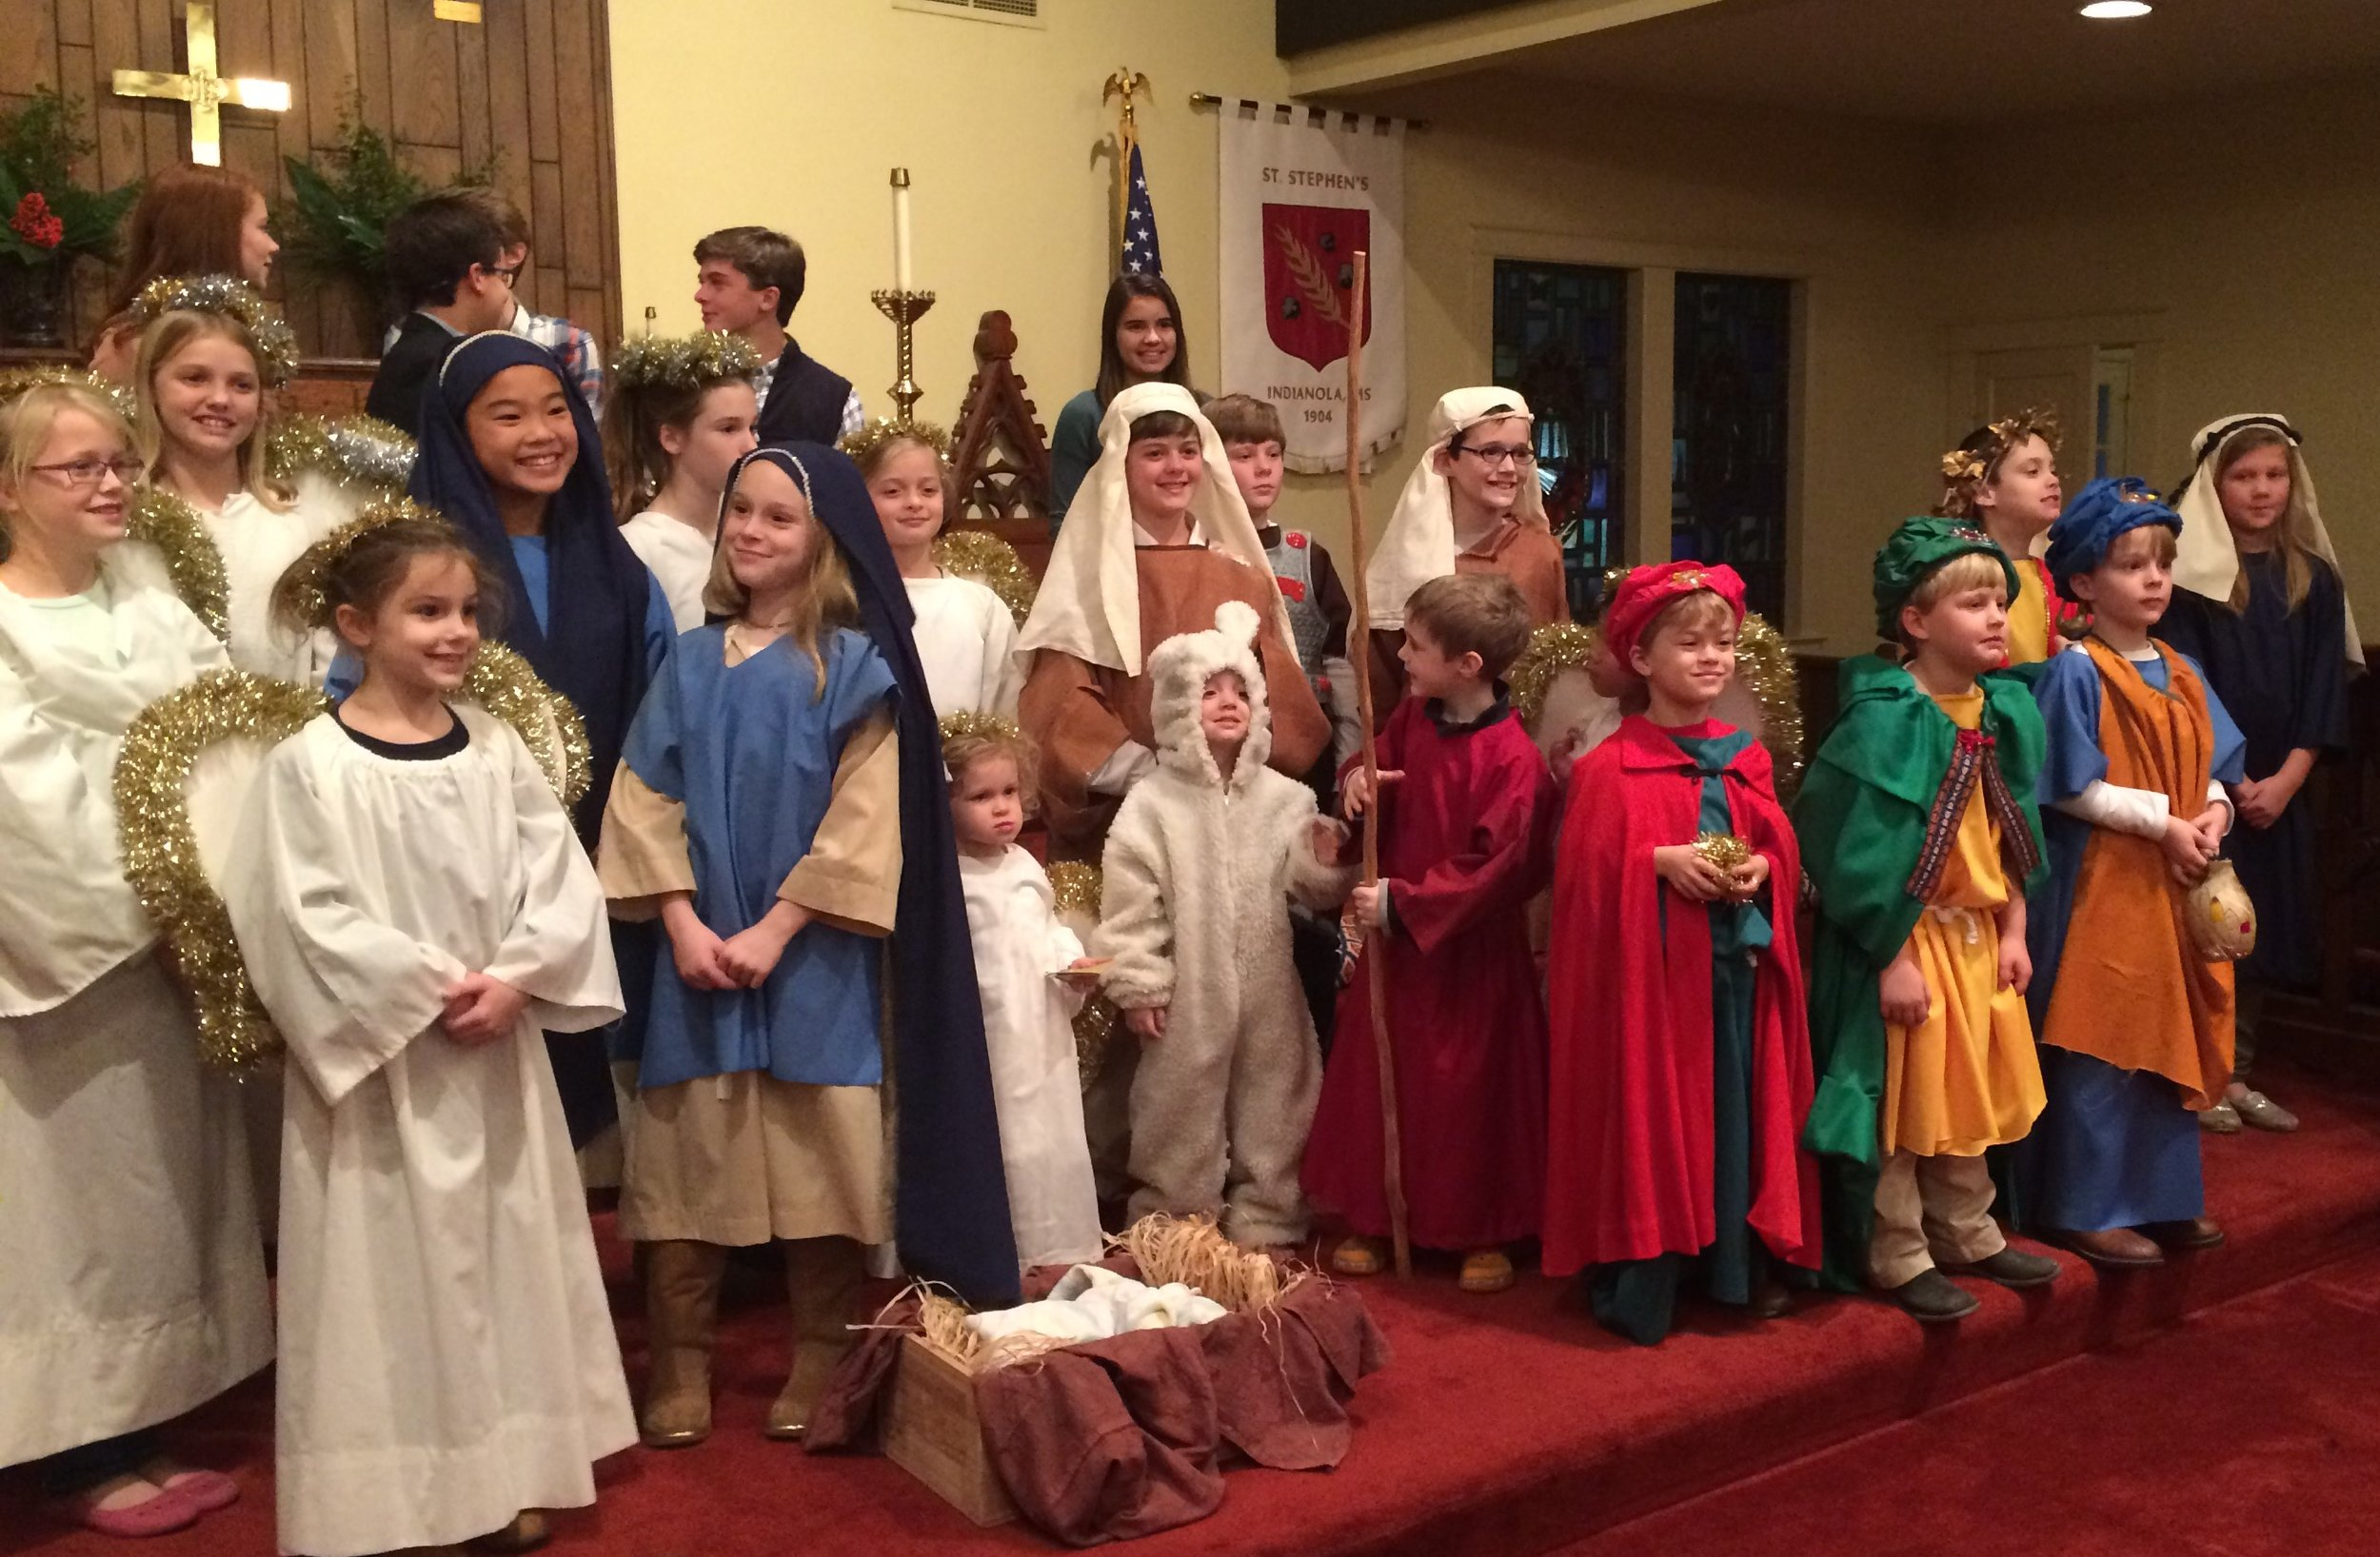 Group Picture of Christmas Pageant Participants